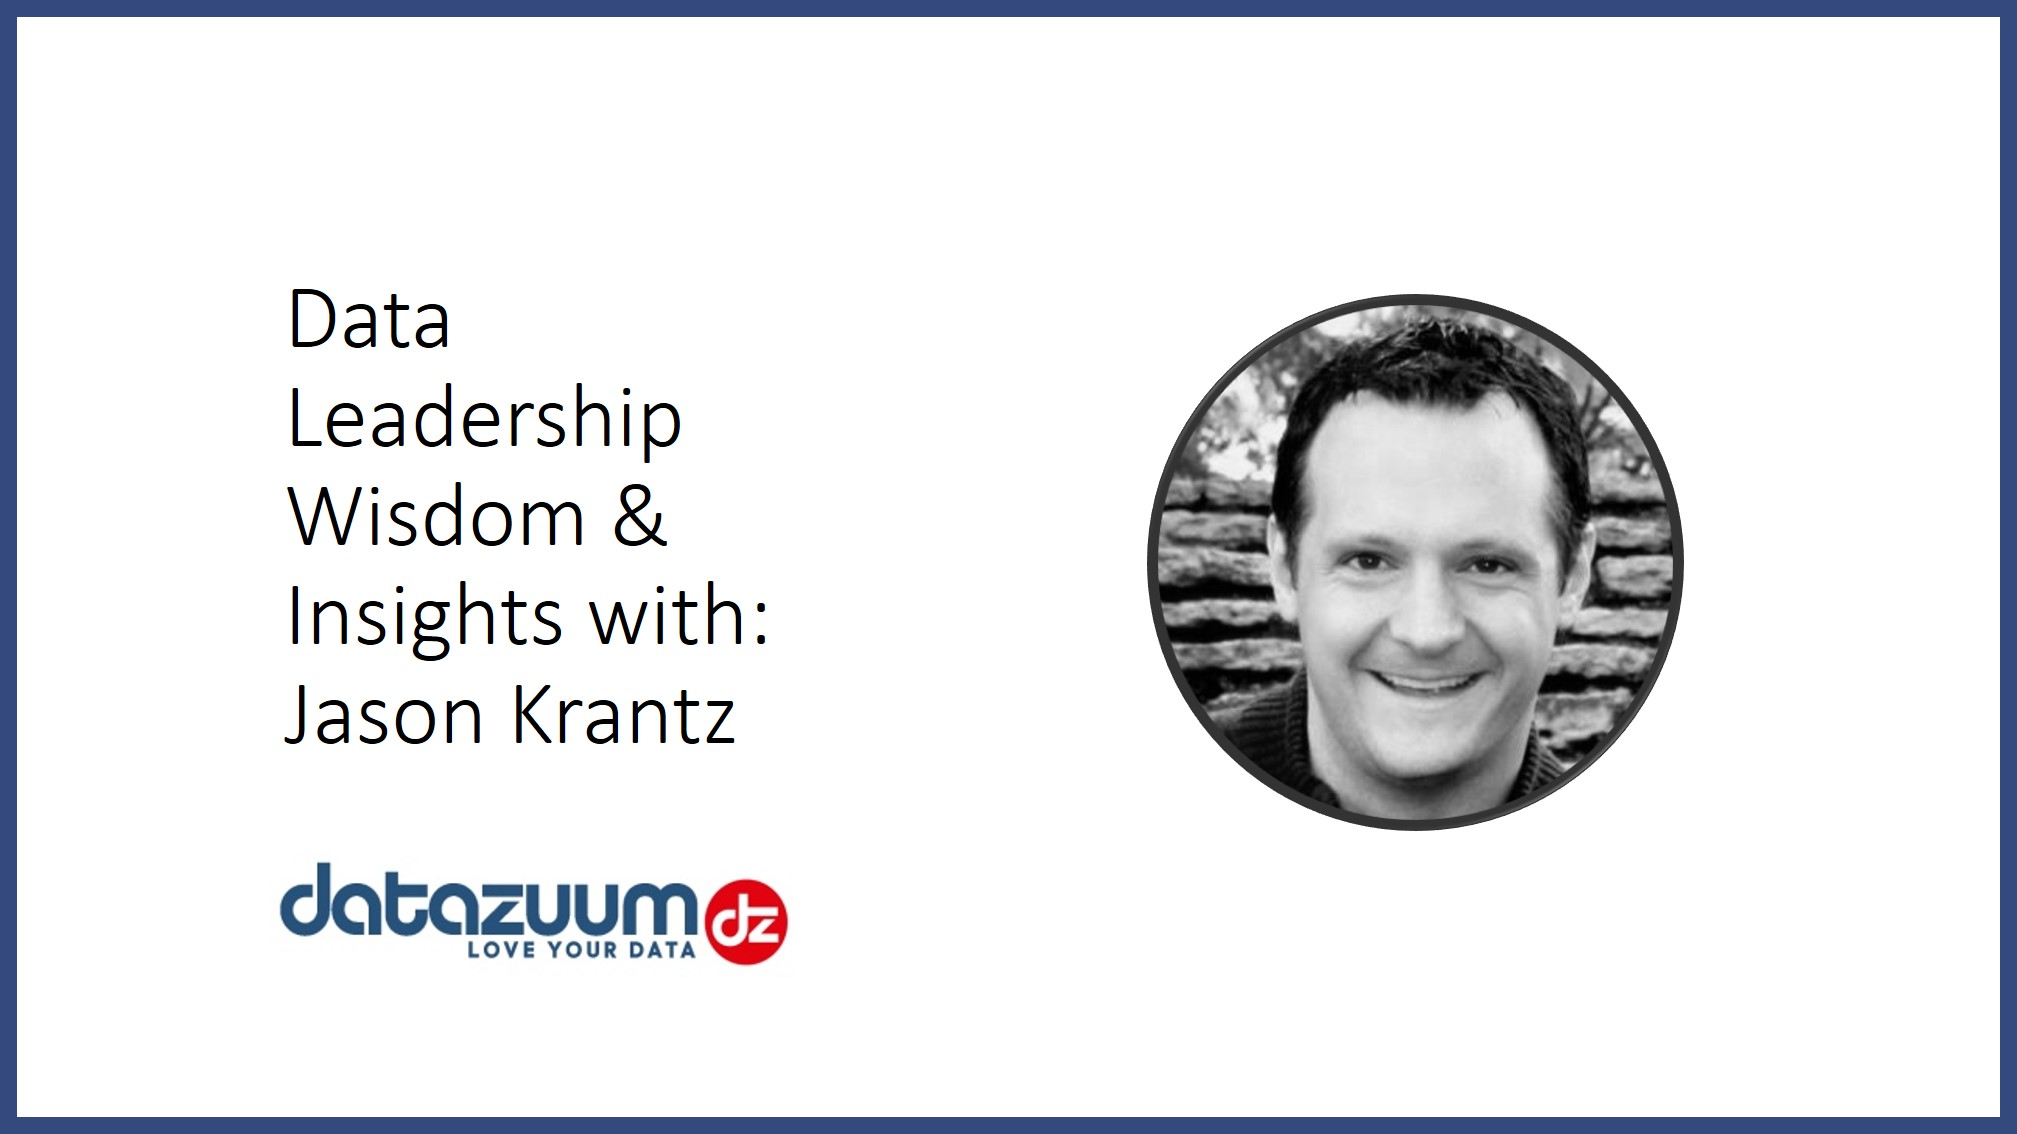 Webcast: Data Leadership, Wisdom & Insights With Jason Krantz